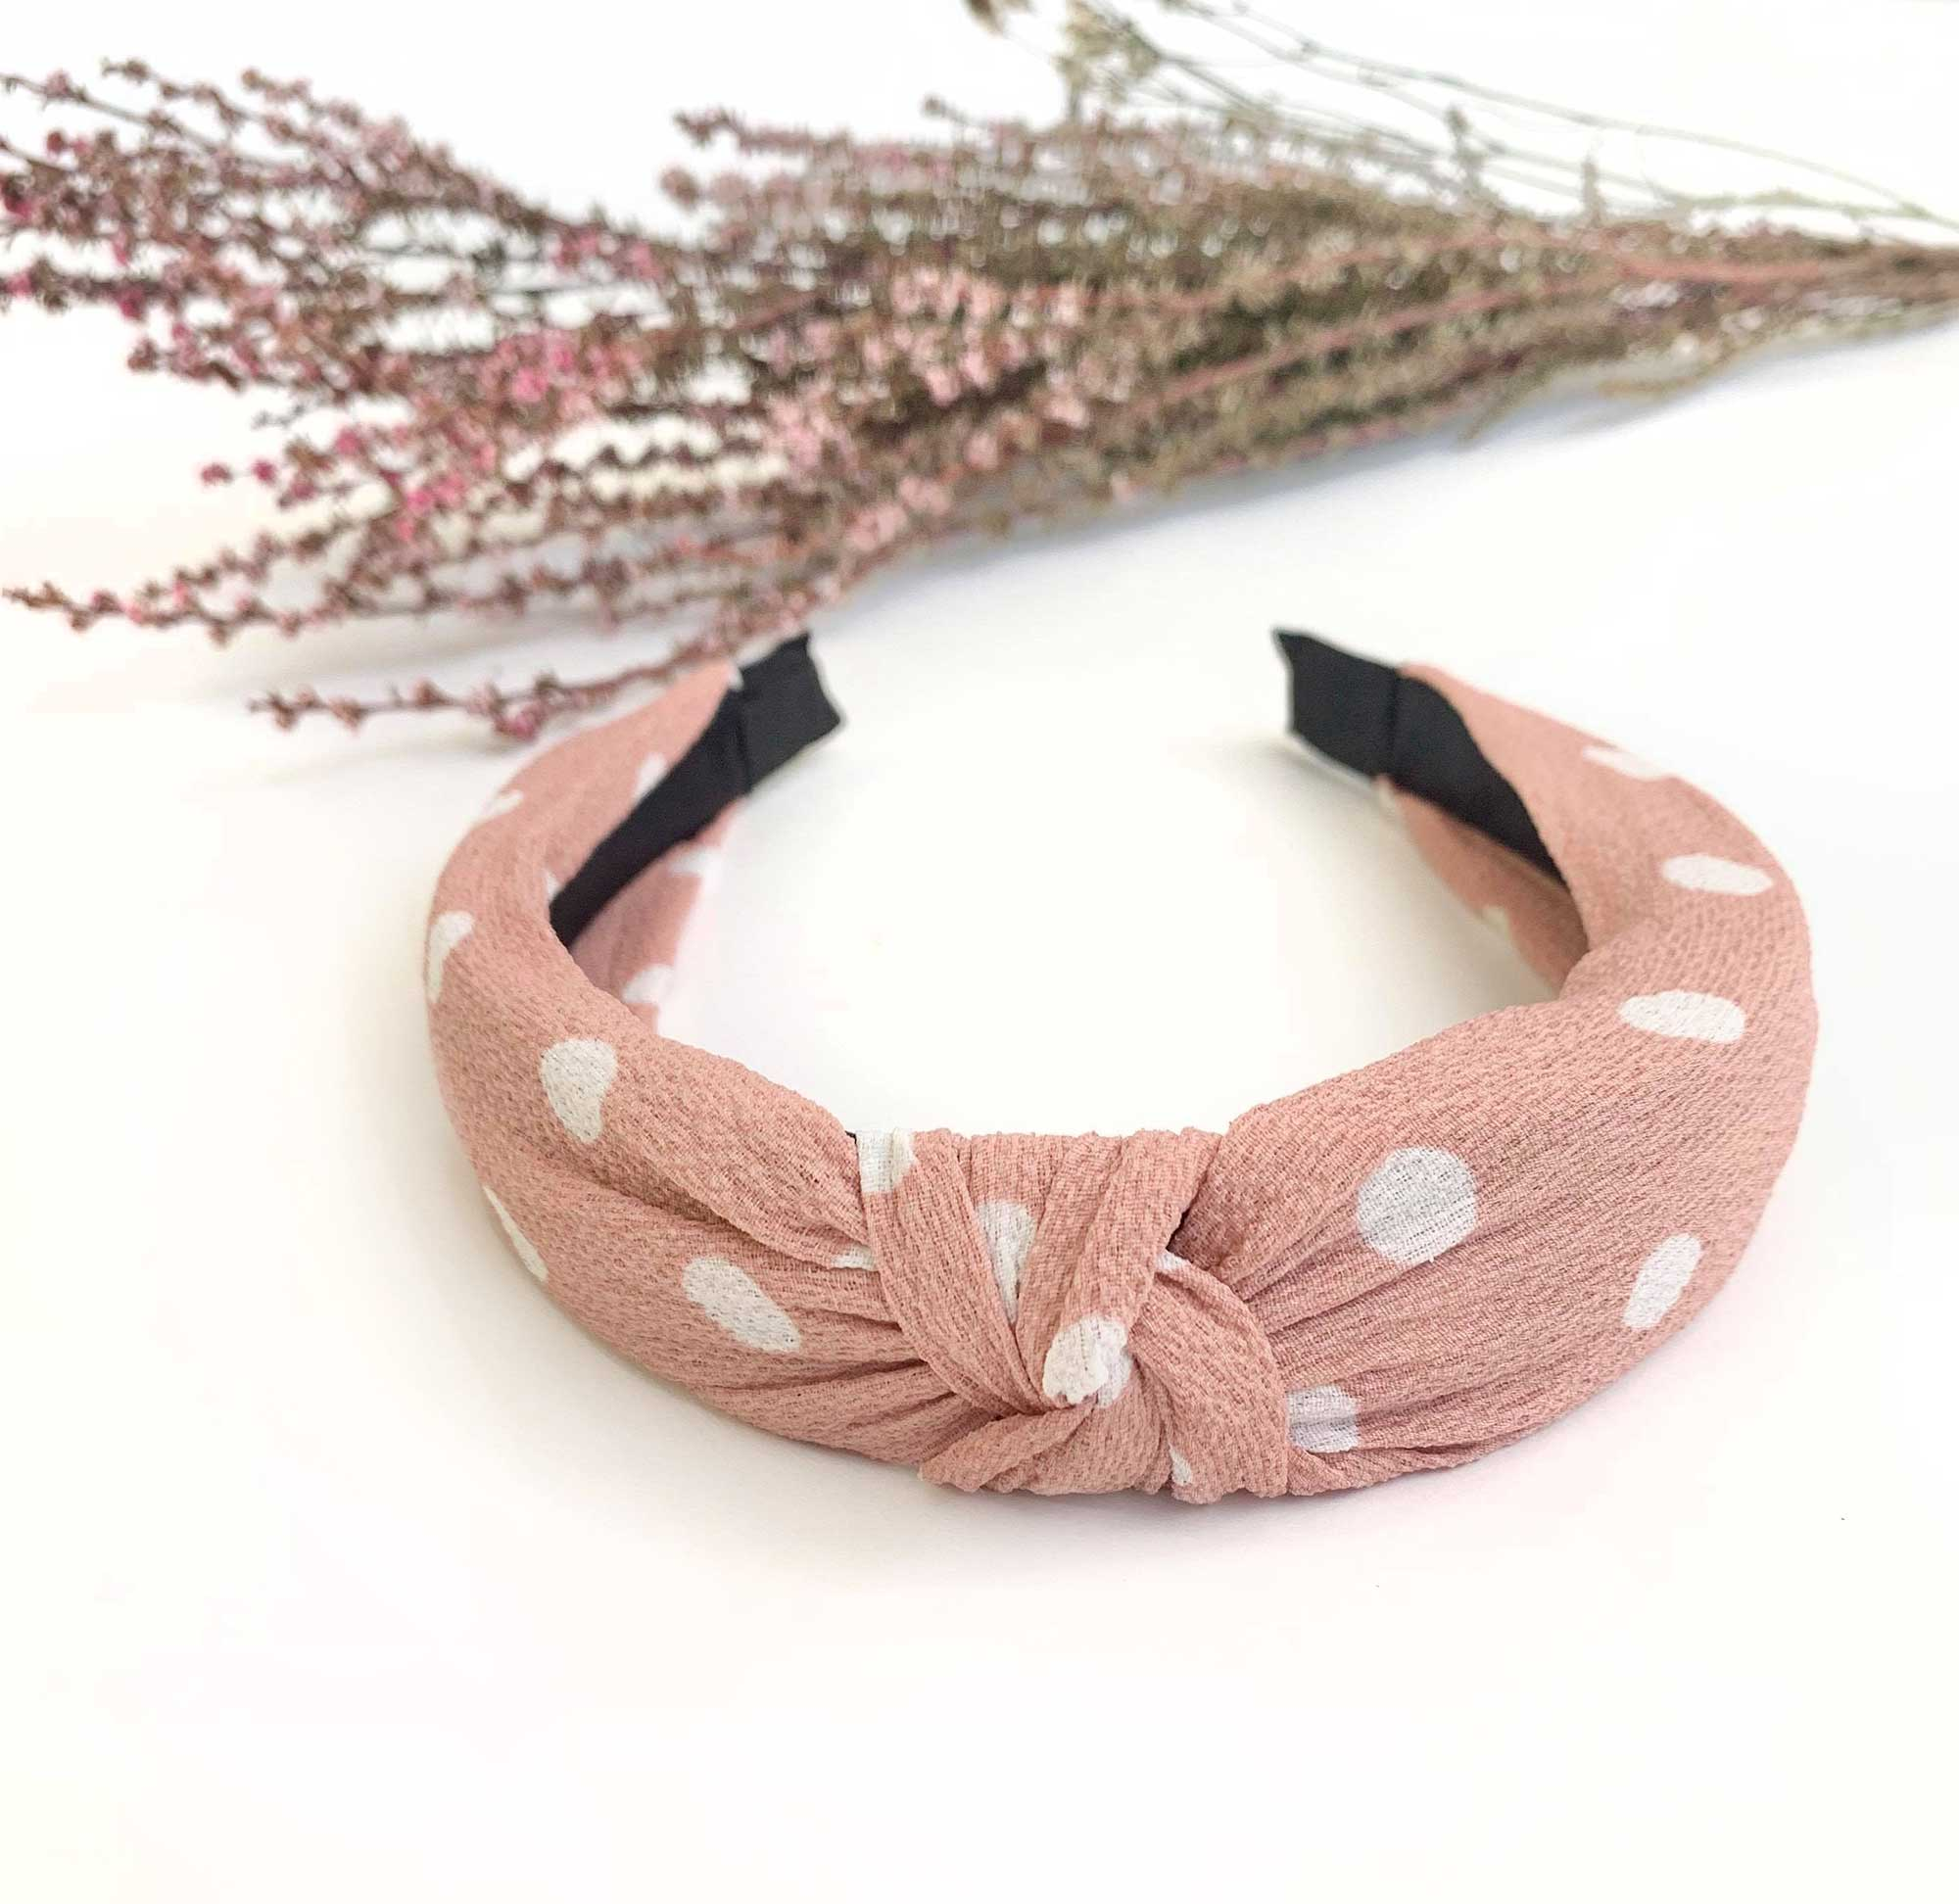 Tamara Dusty Pink Knot Headband1